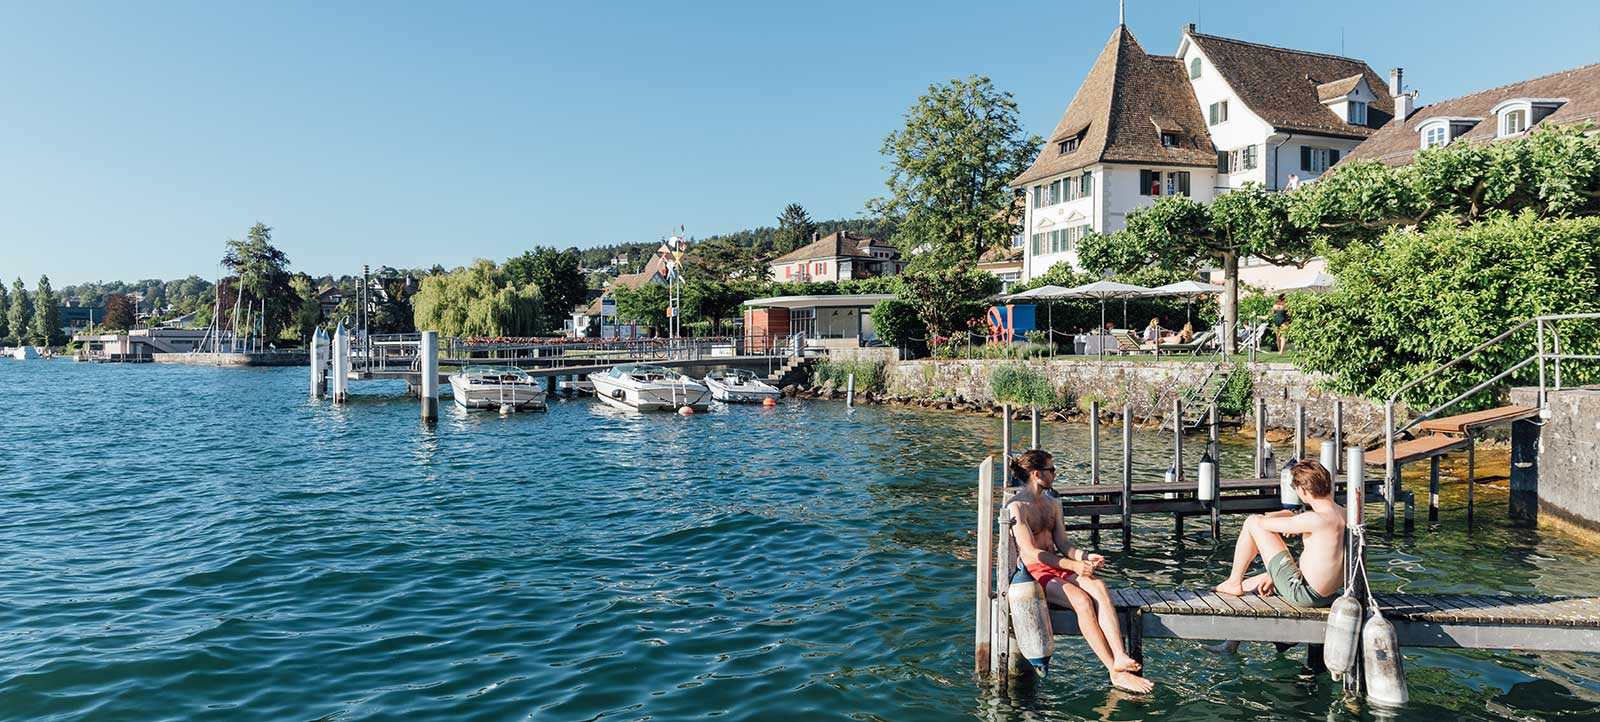 Lake Zurich holiday experience